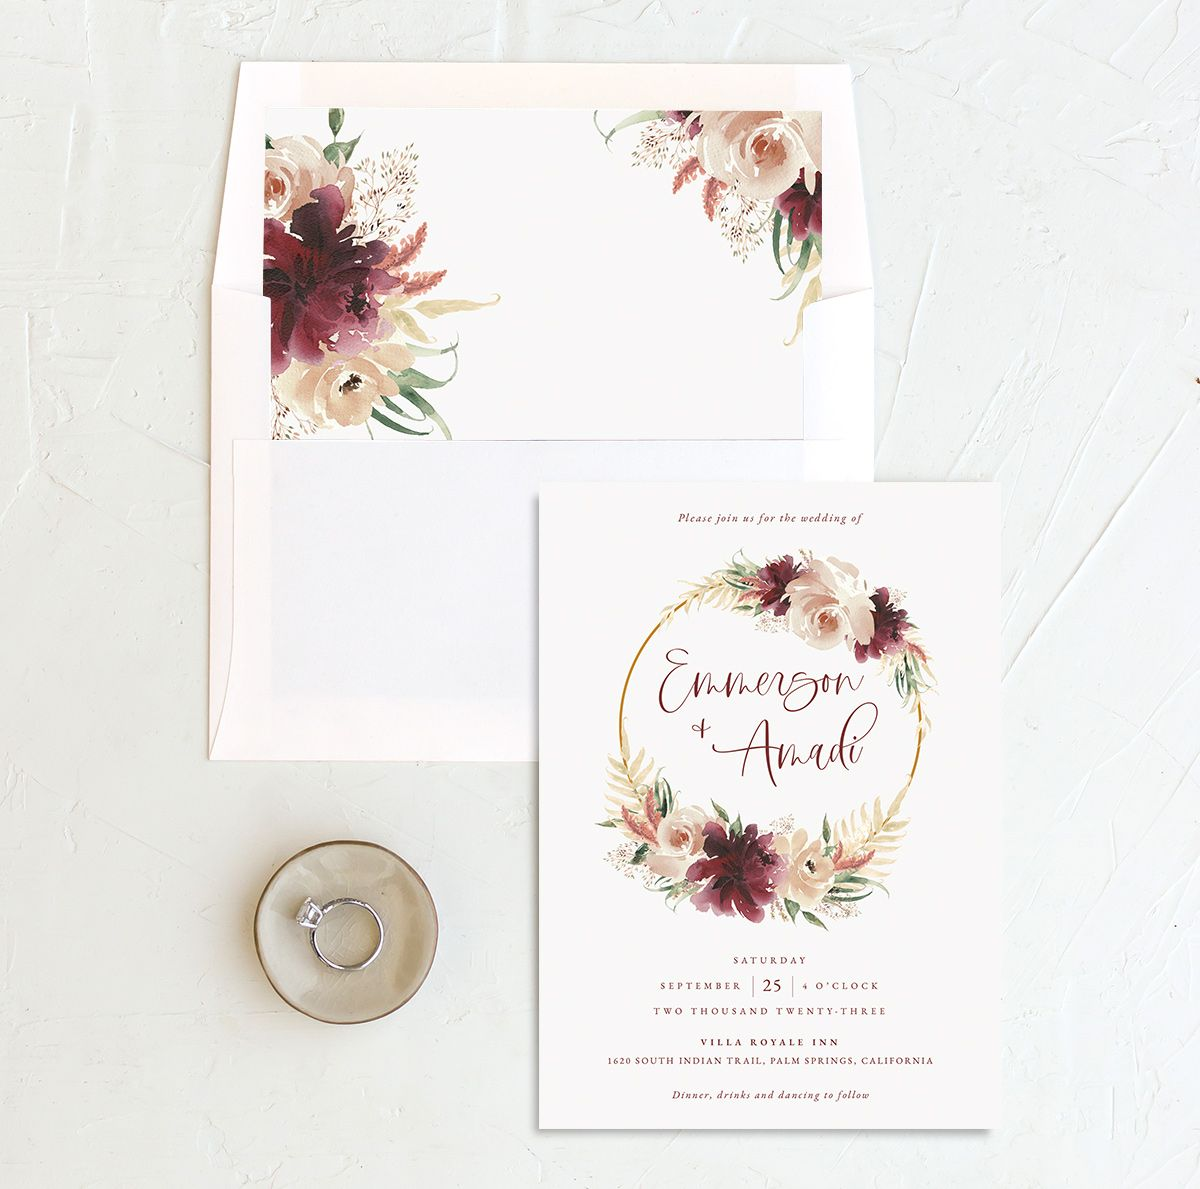 Floral Wreath wedding invitation with liner